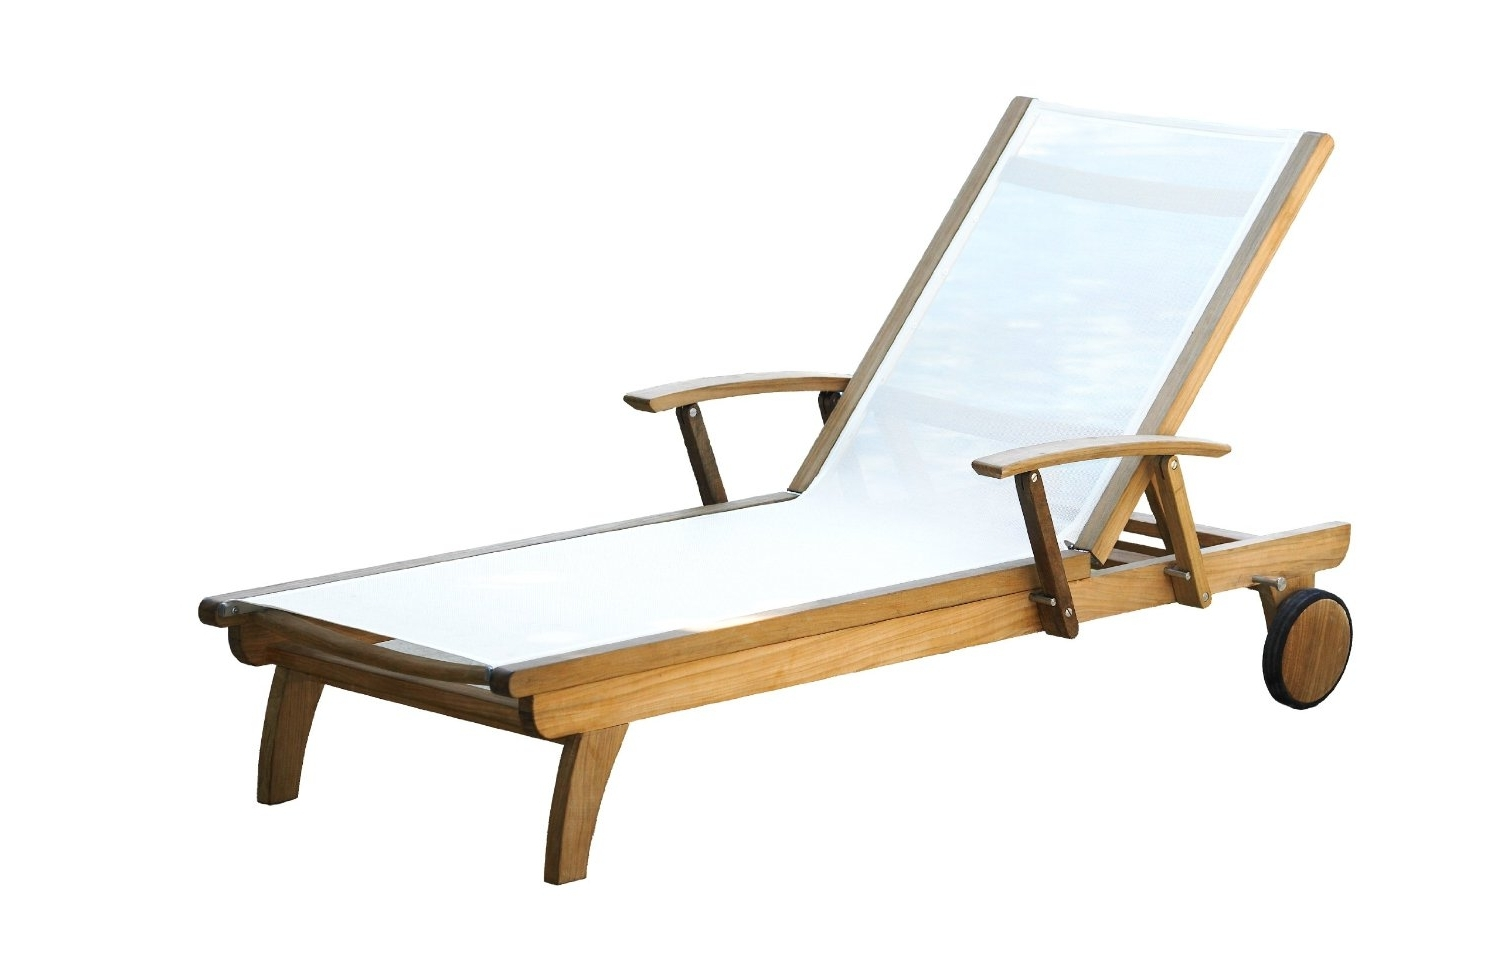 Chaise Lounge Sun Chairs Pertaining To Favorite Teak Chaise Lounge Chair – Teak Patio Furniture World (View 6 of 15)